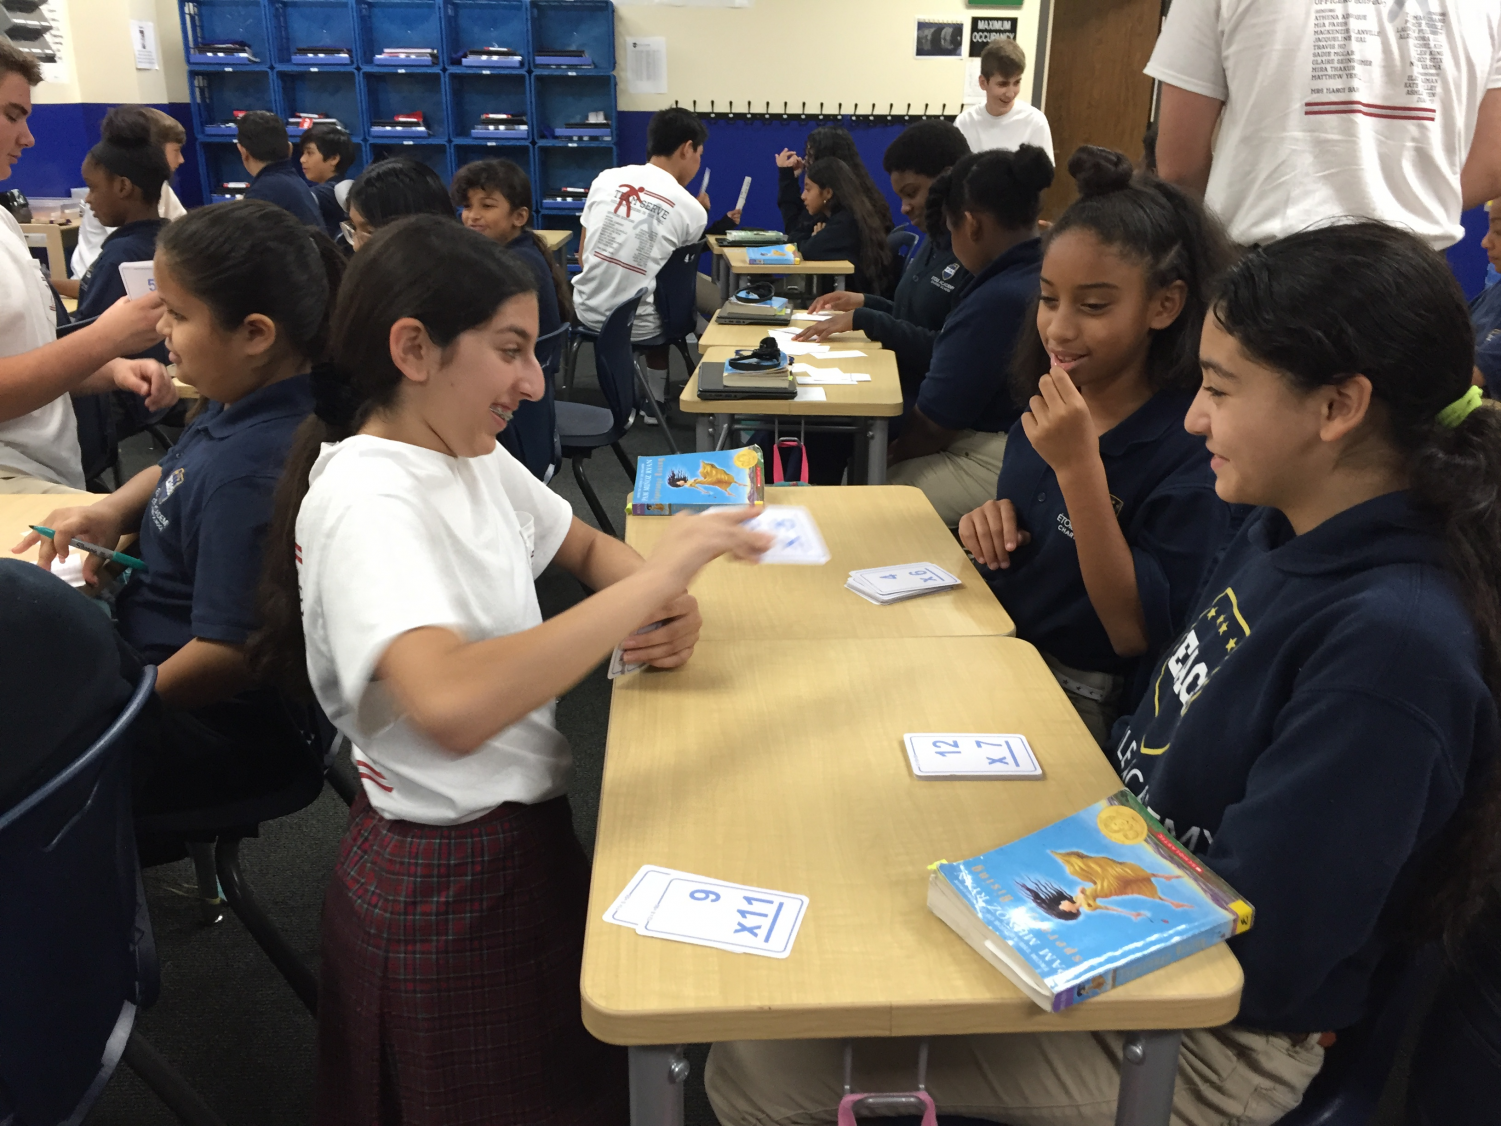 Many freshman advisories volunteered at other schools, including Klein Head Start and Etoile Academy.